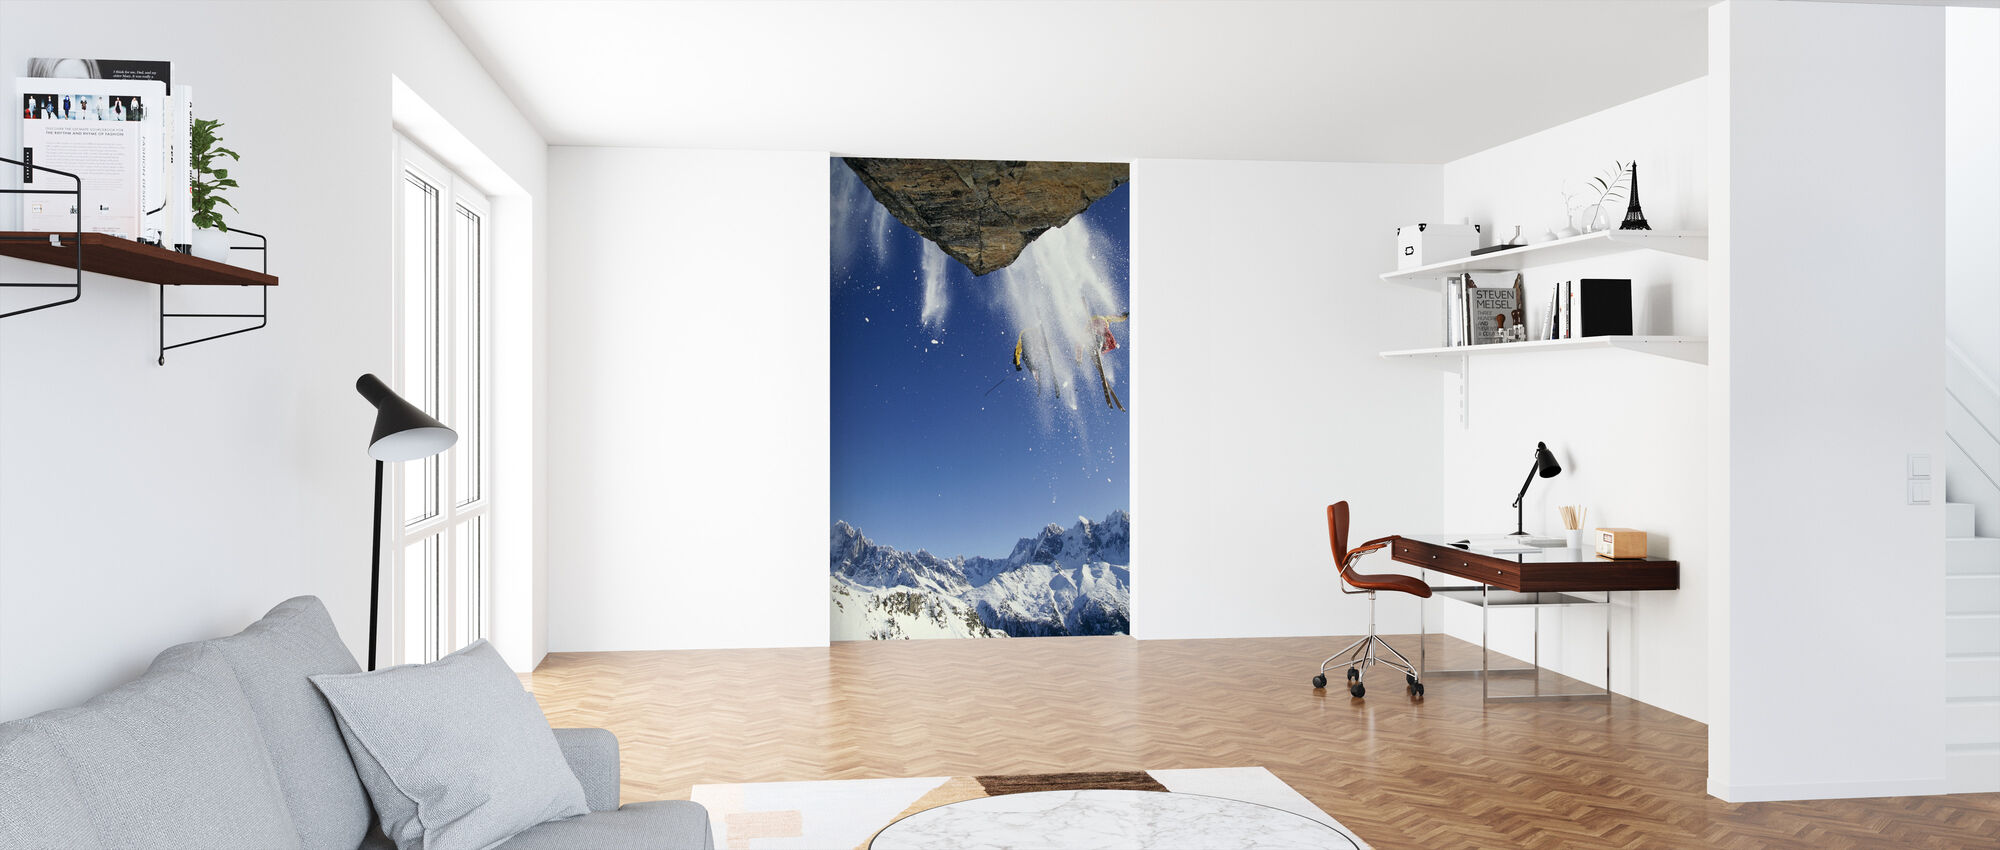 Off Piste Skiing at Mont Blanc - Wallpaper - Office